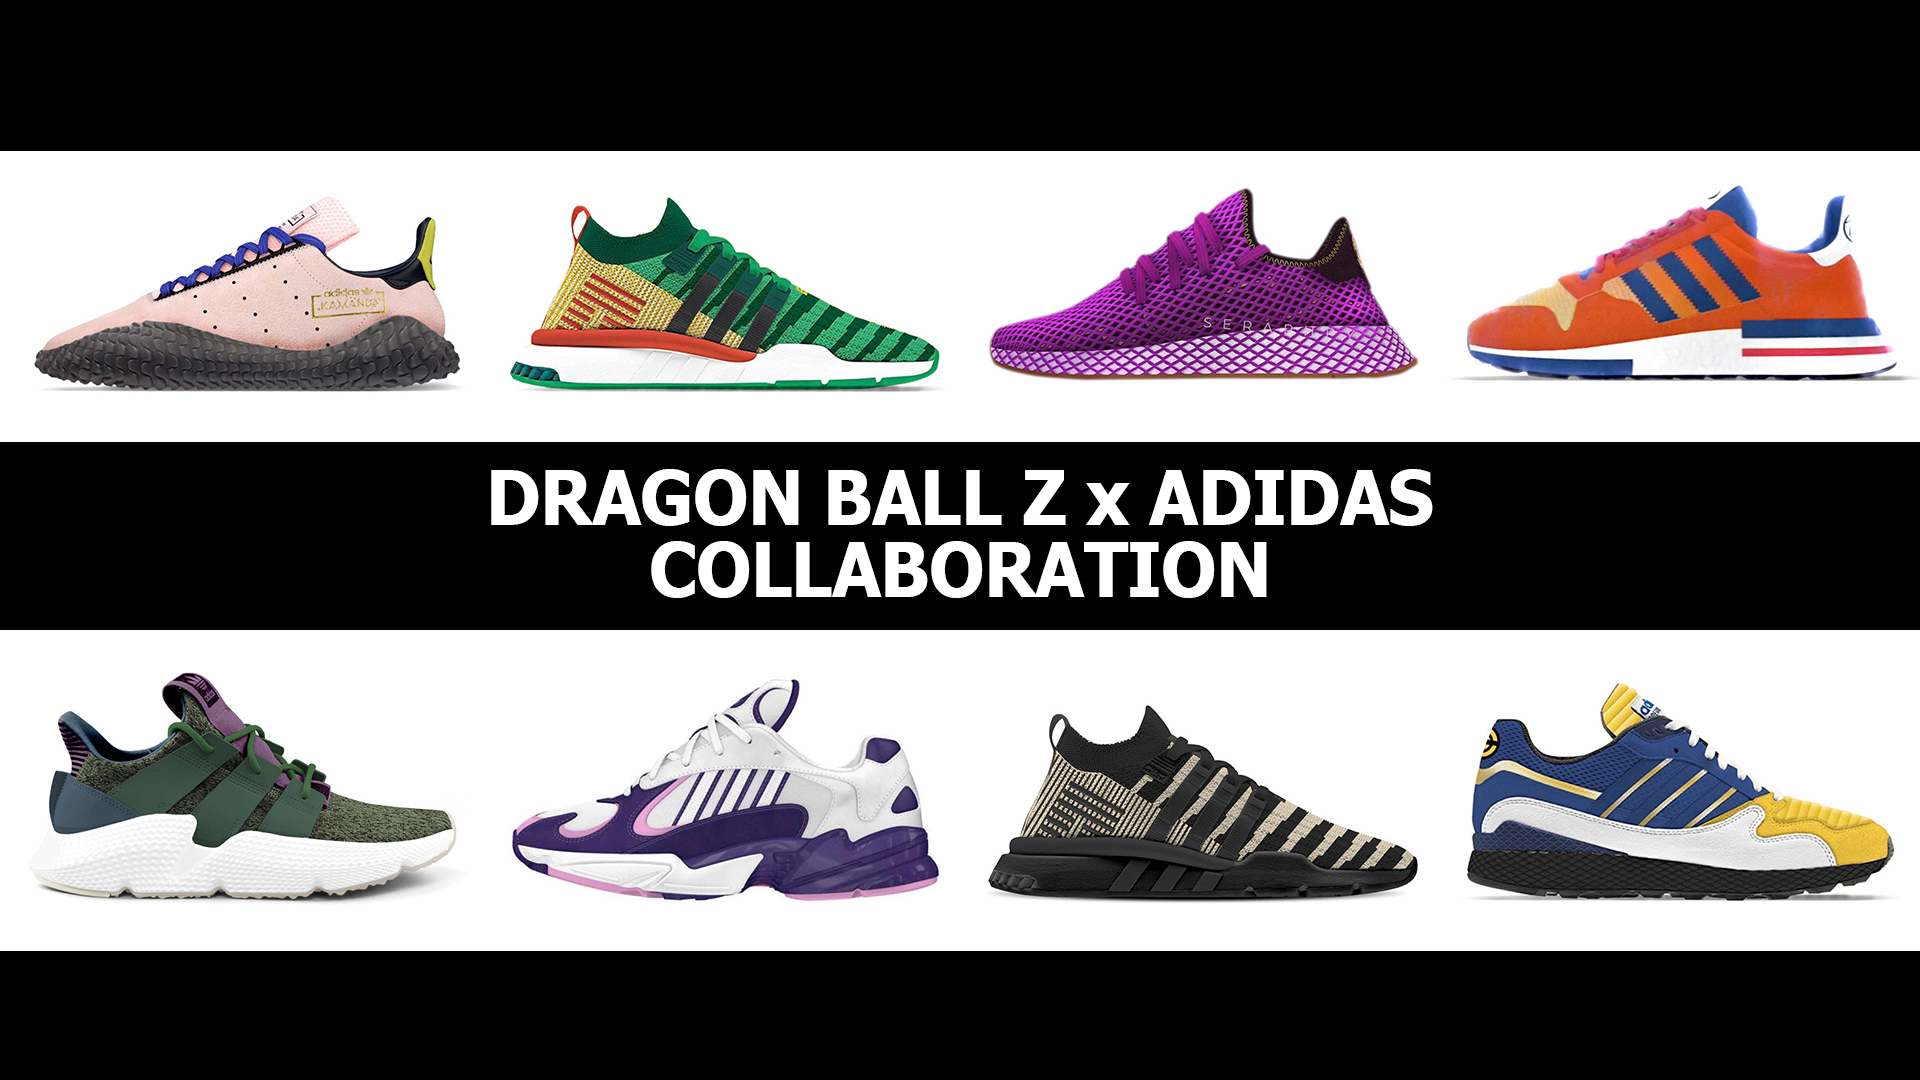 b86dbb399bca Check Out the SUPER SAIYAN Adidas x Dragon Ball Z Collab